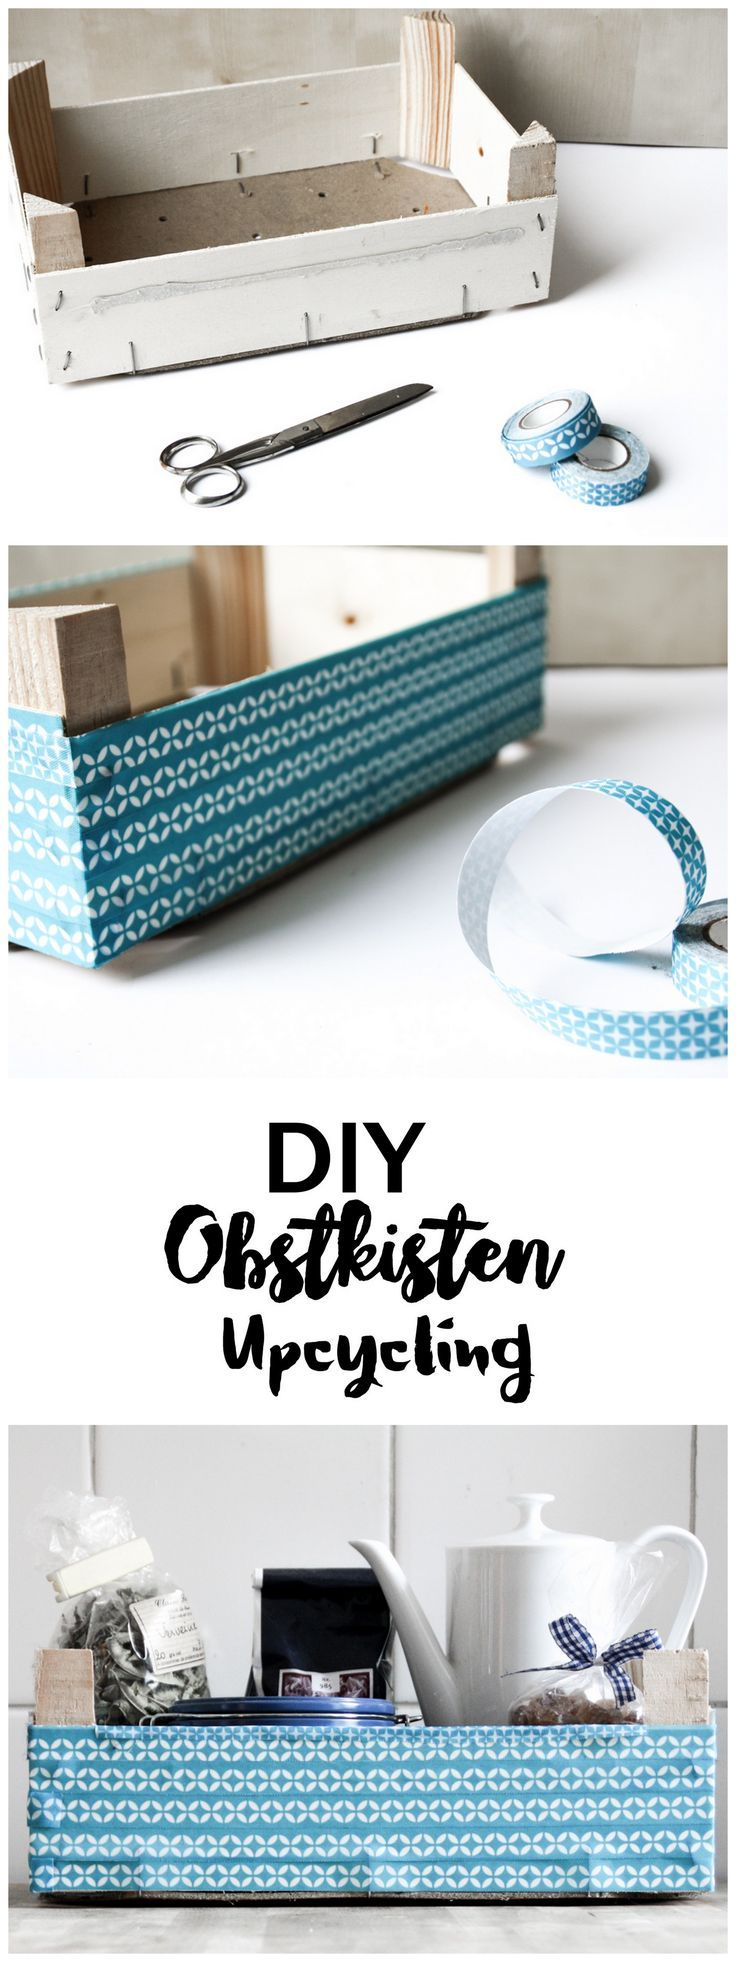 Obstkisten-Upcycling #fabrictape